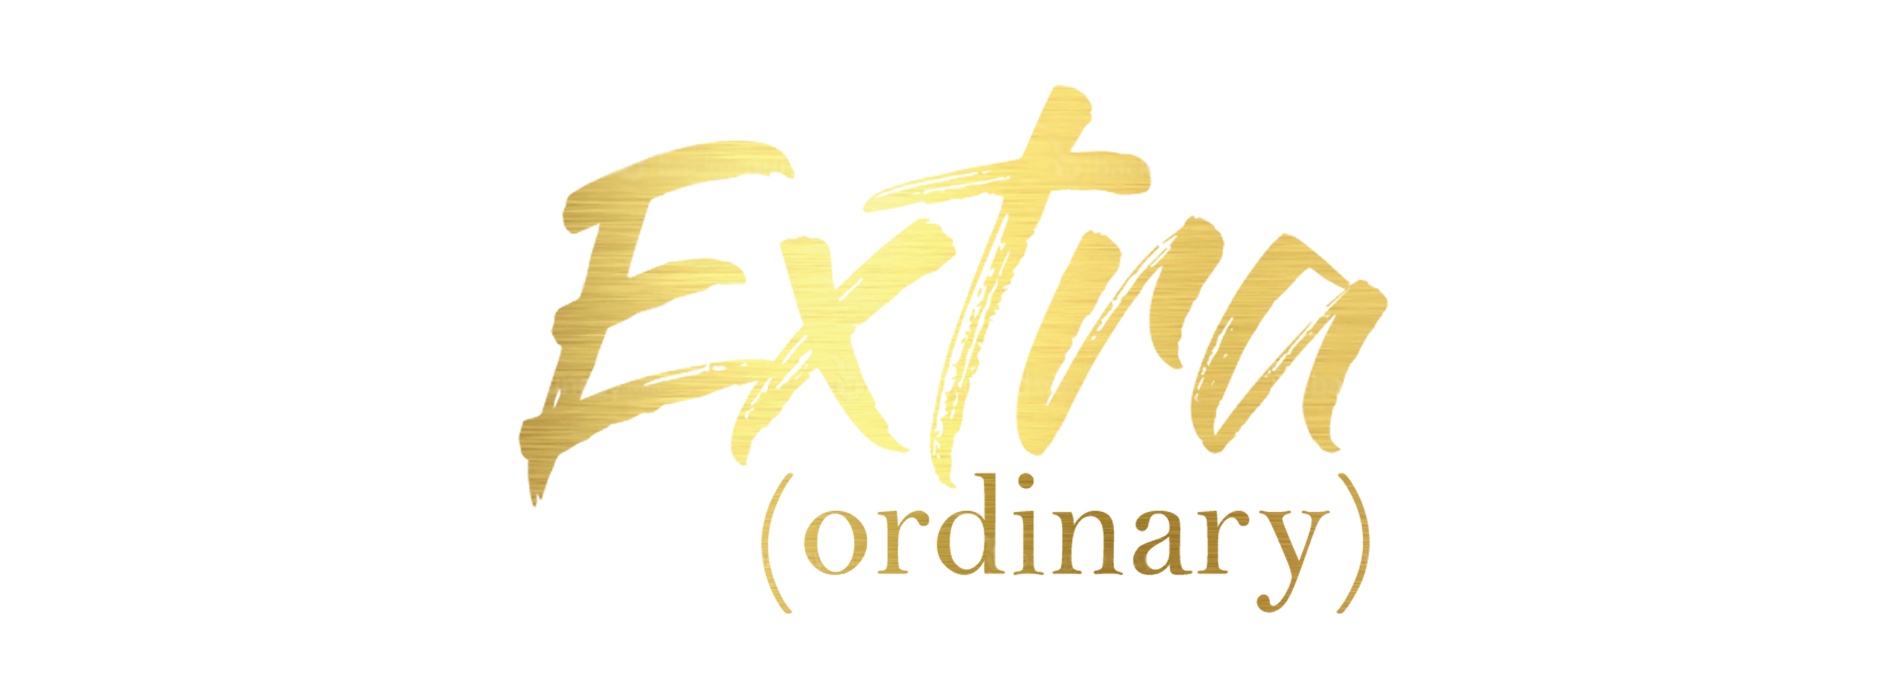 Hear about the incredible stories of Elisha, and how God used an ordinary young farmer to do extraordinary things. We are all just ordinary, push yourself to be extraordinary!